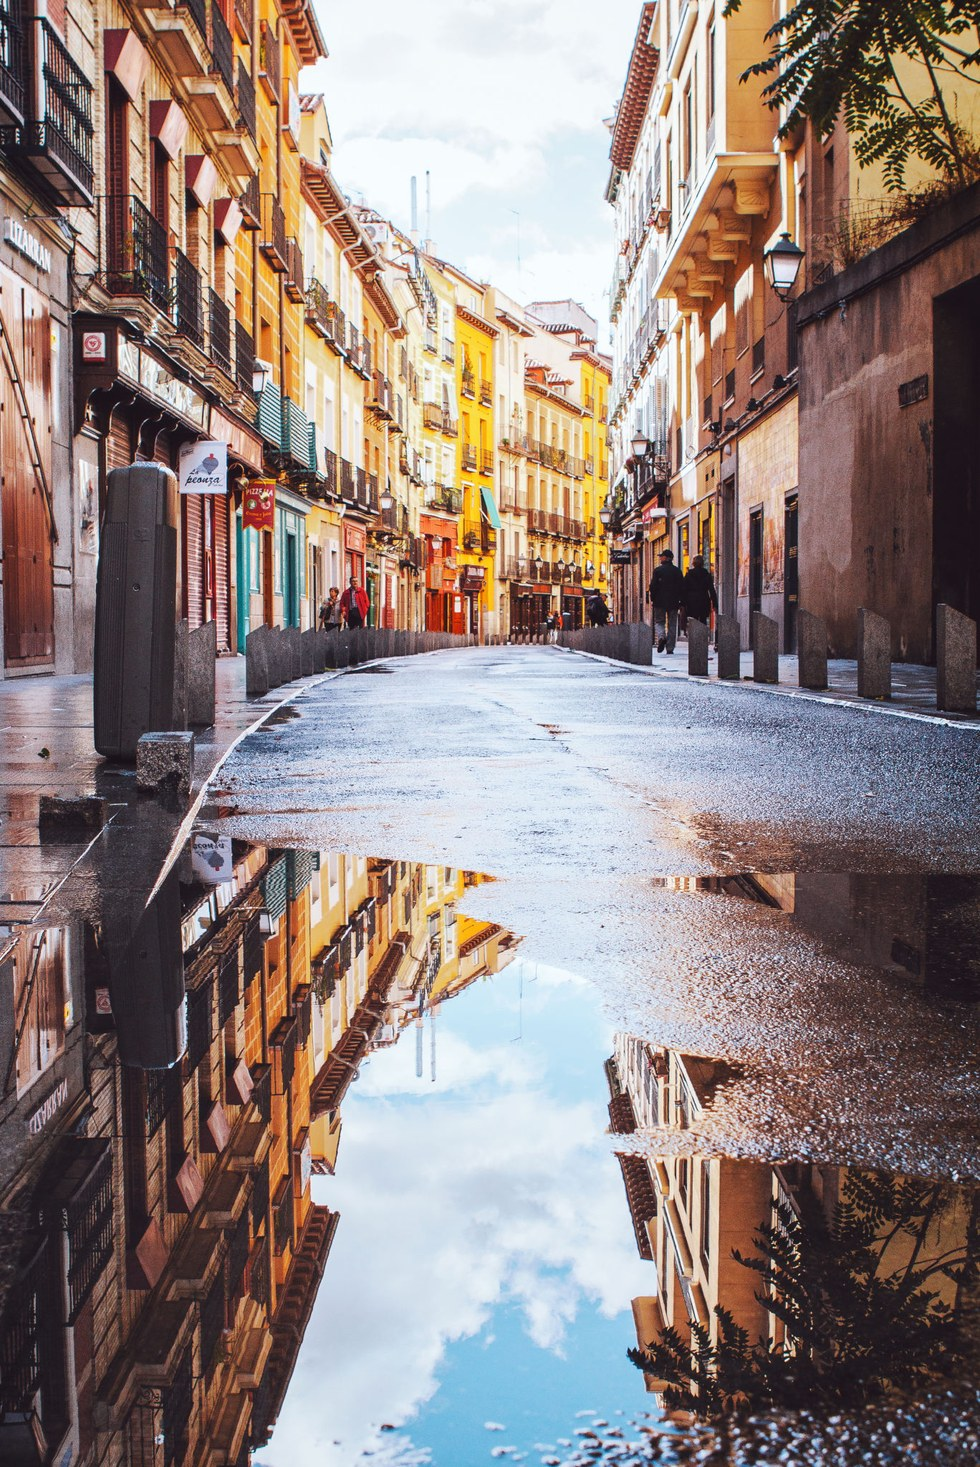 Madrid's winding streets are perfect for a confusing stroll